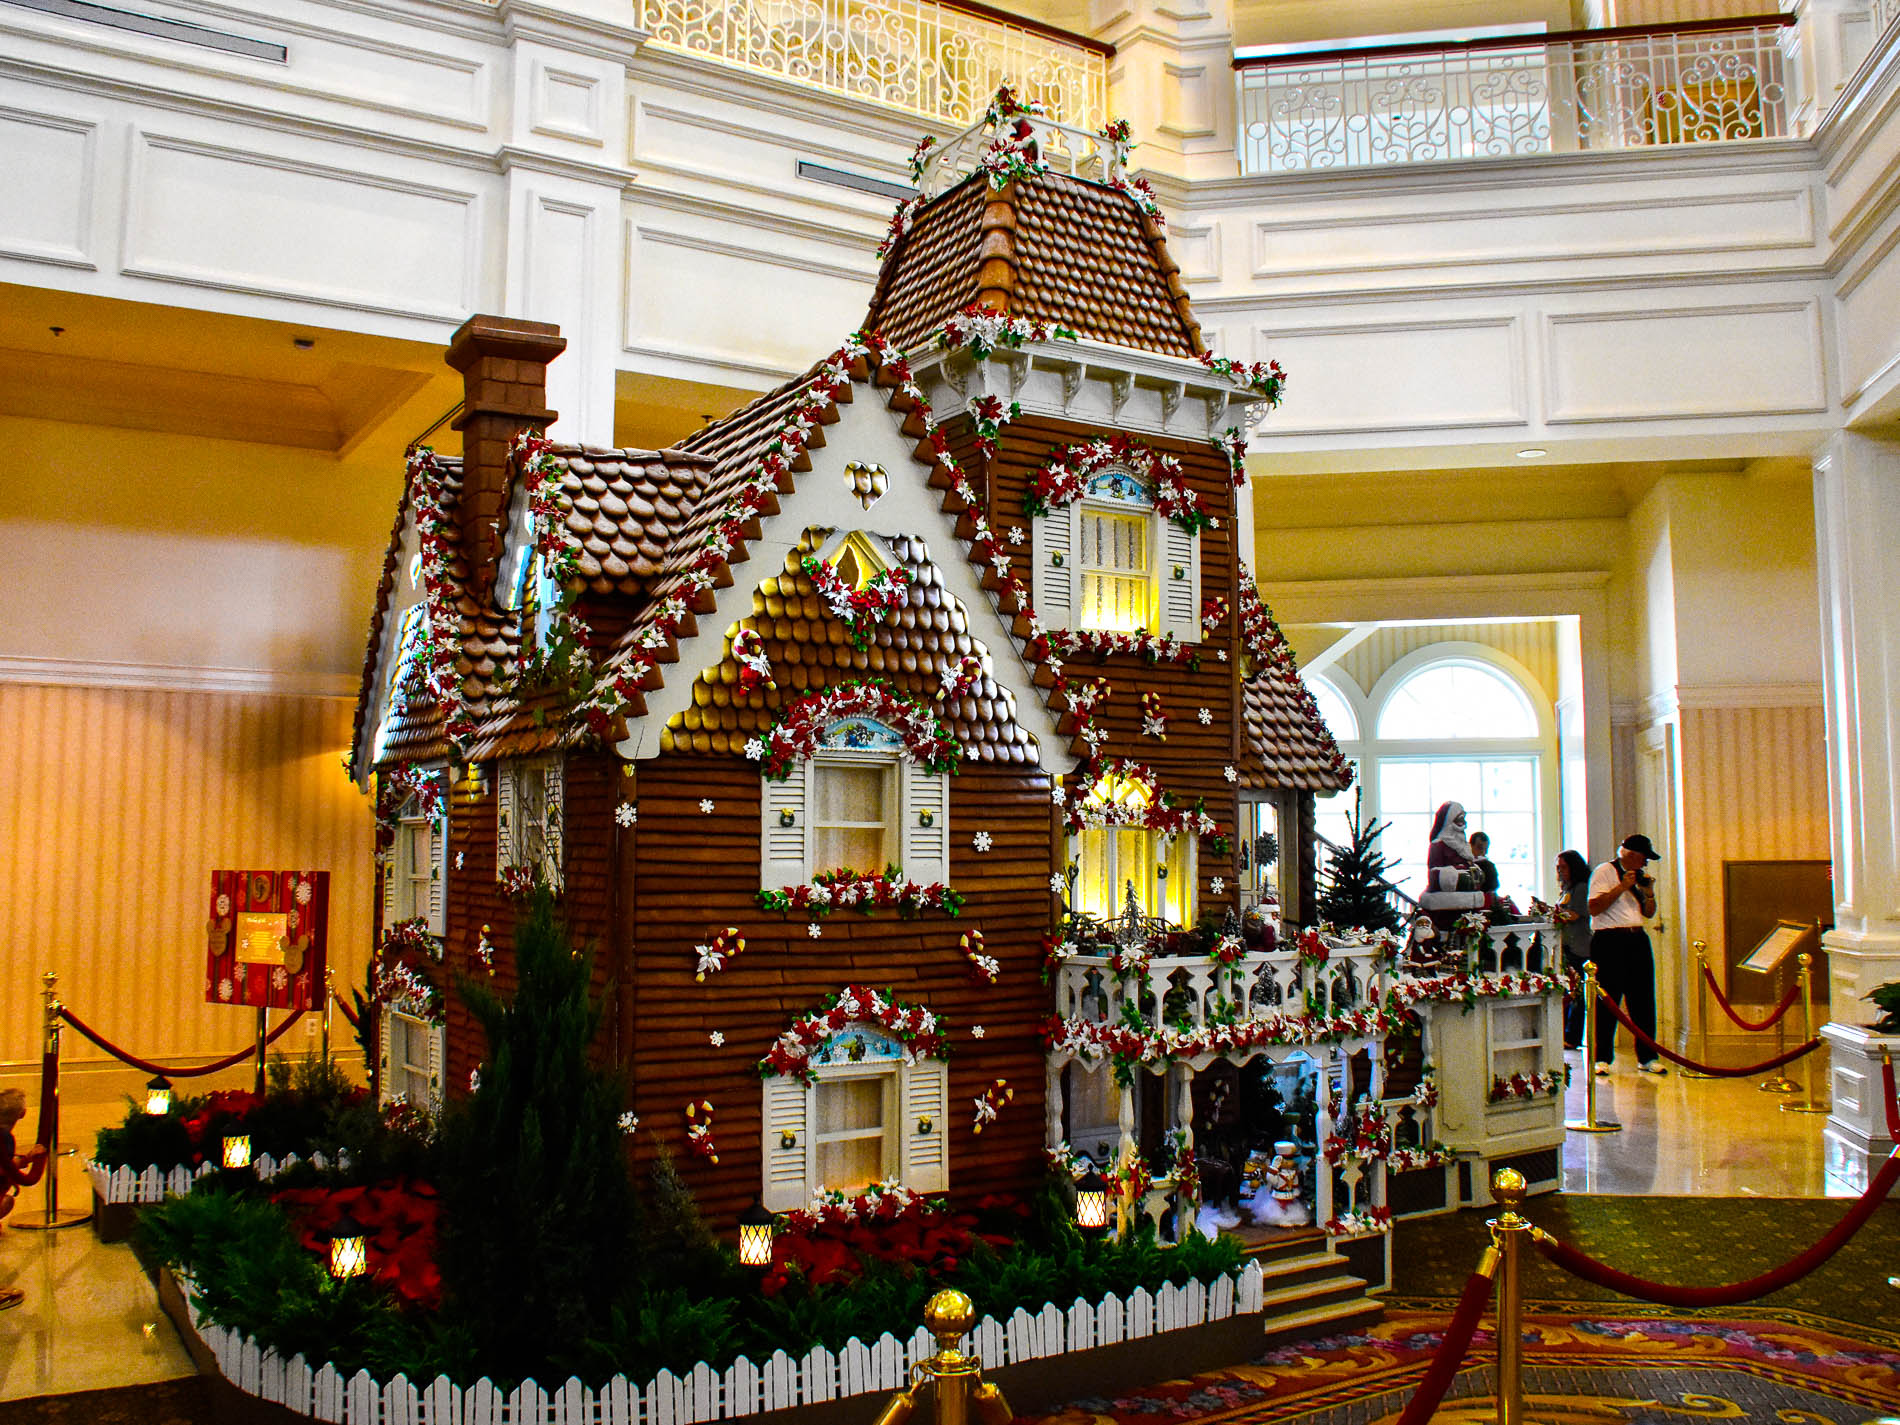 Disney hotel christmas decorations - The Gingerbread